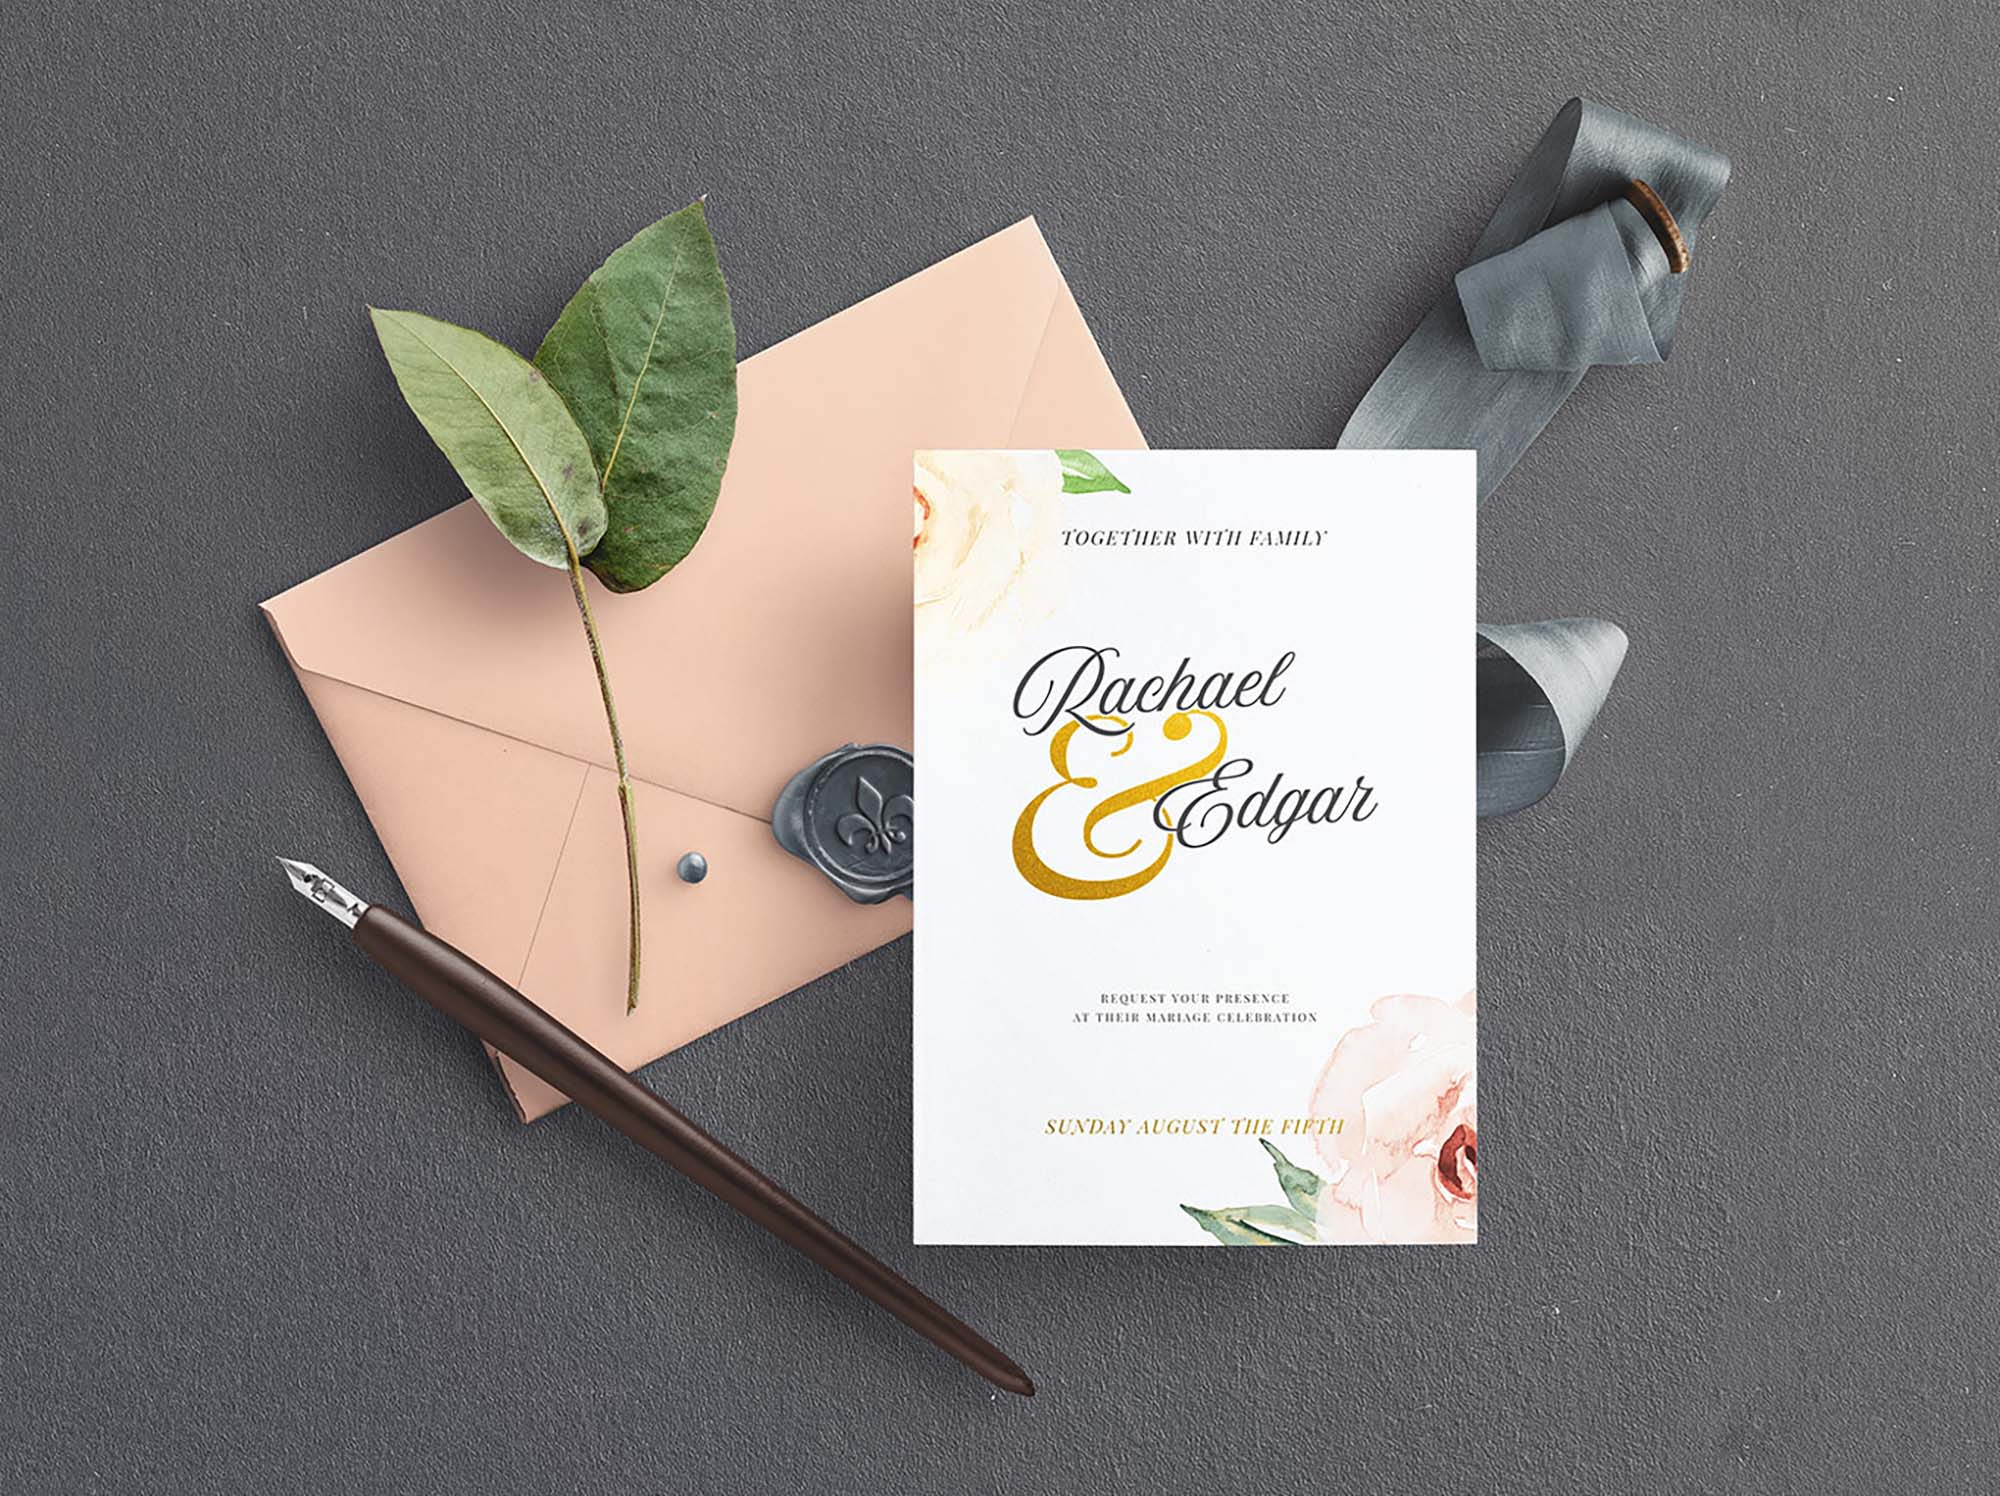 Wedding Stationery Mockup